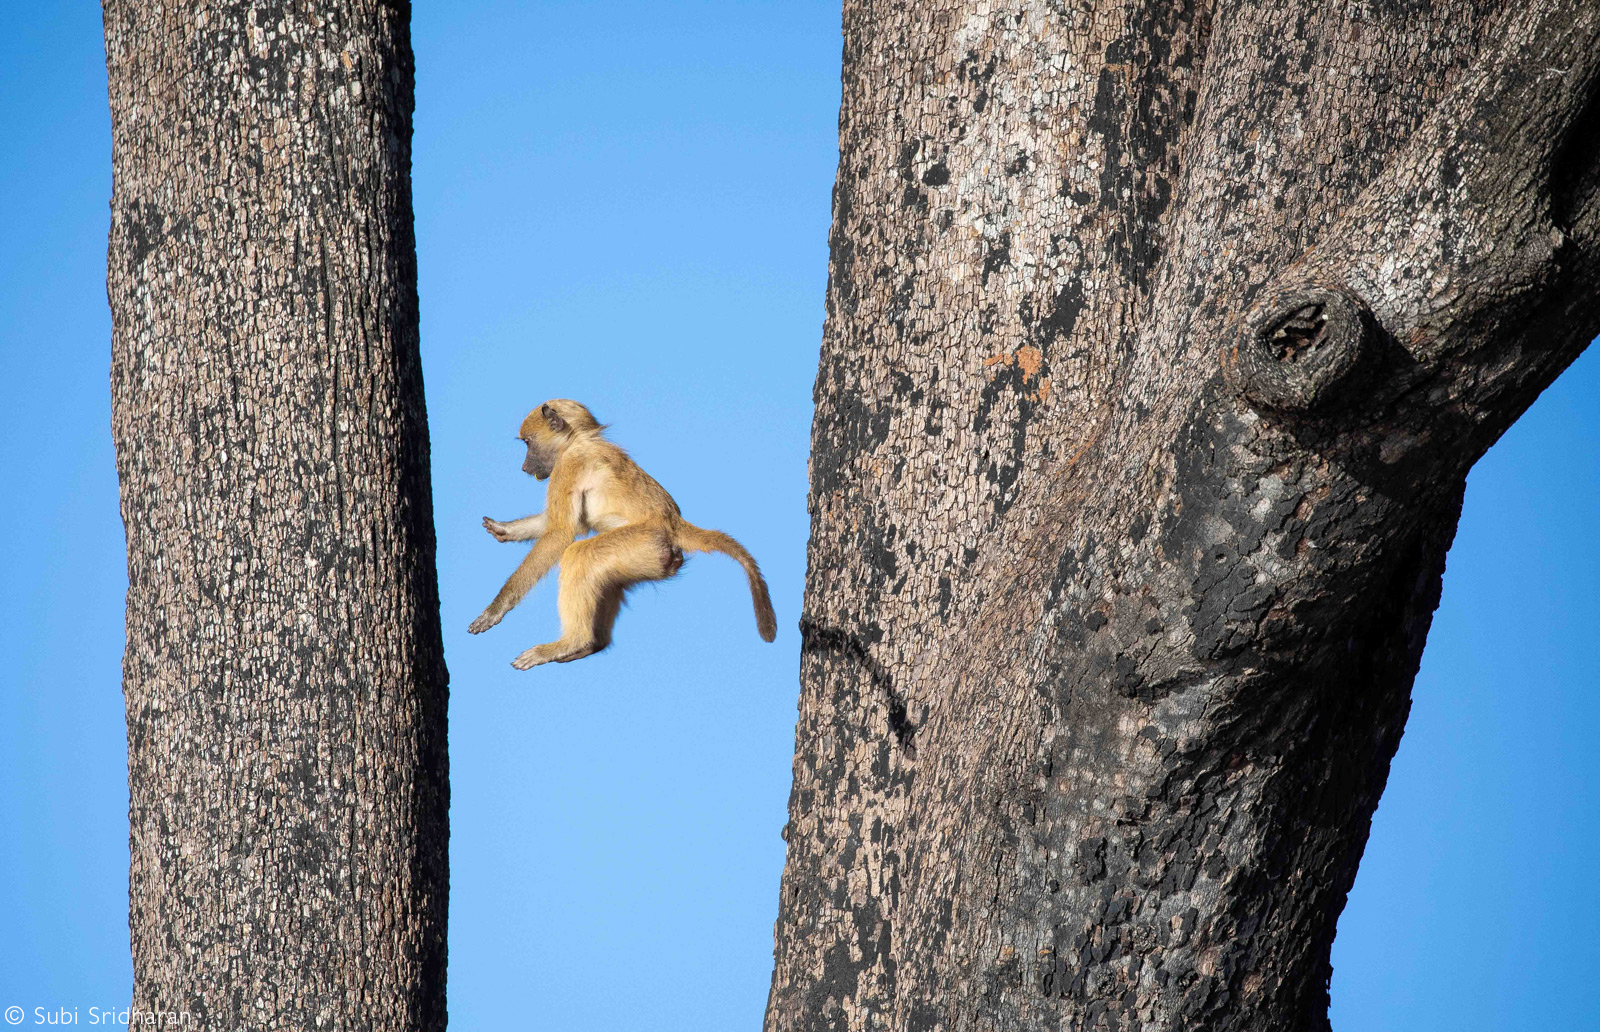 A young baboon takes a leap in a tree. Chobe National Park, Botswana © Subi Sridharan